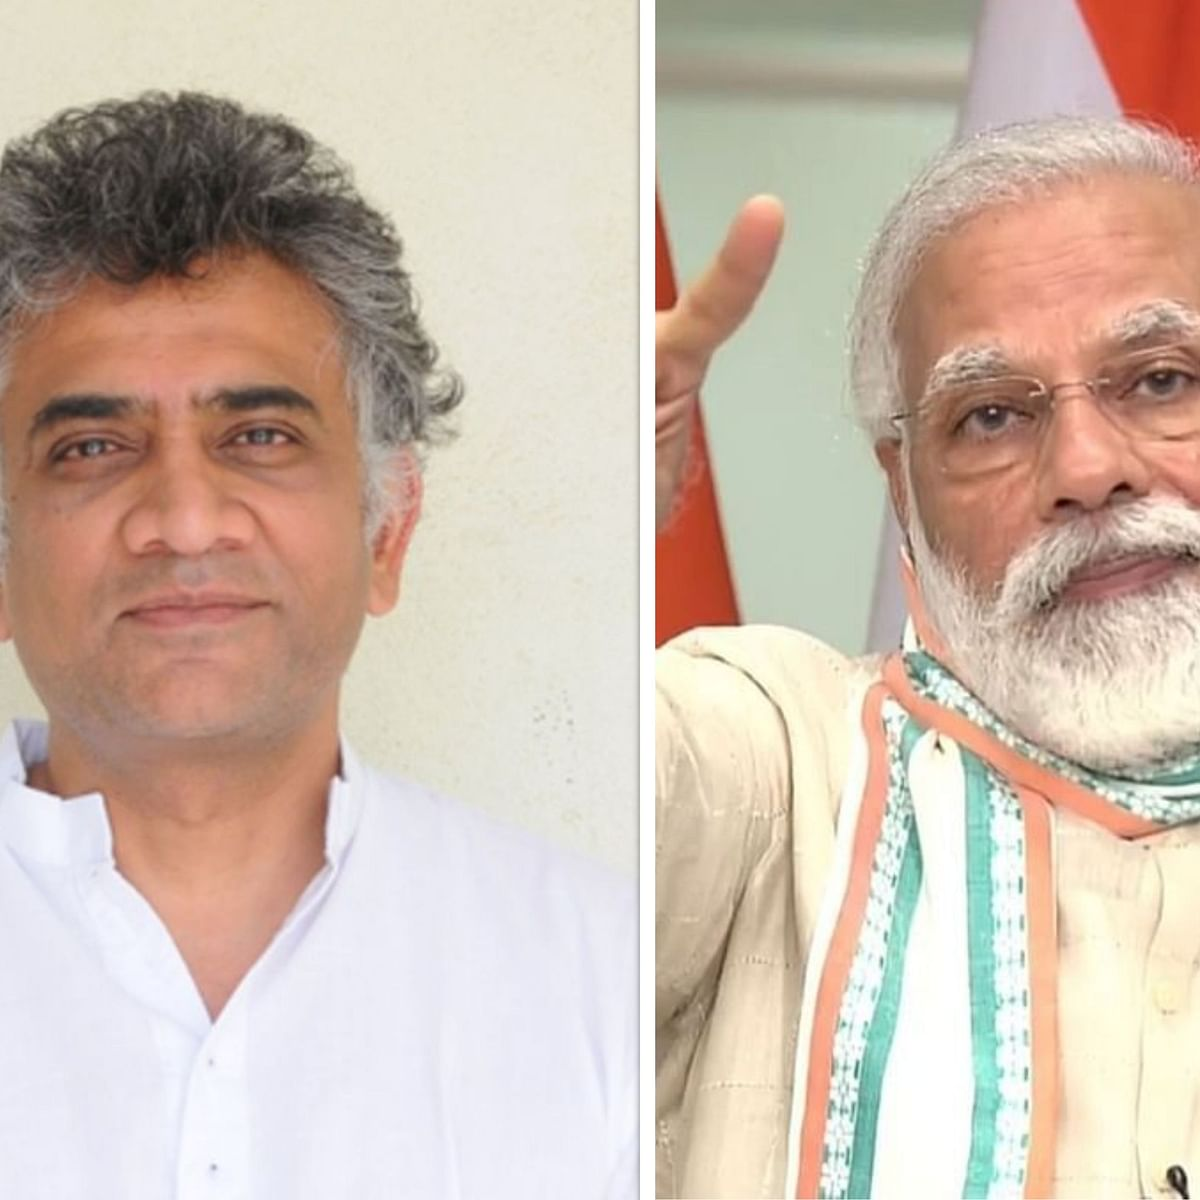 Making sense of PM Modi's caste, Aakar Patel's tweets and defamation